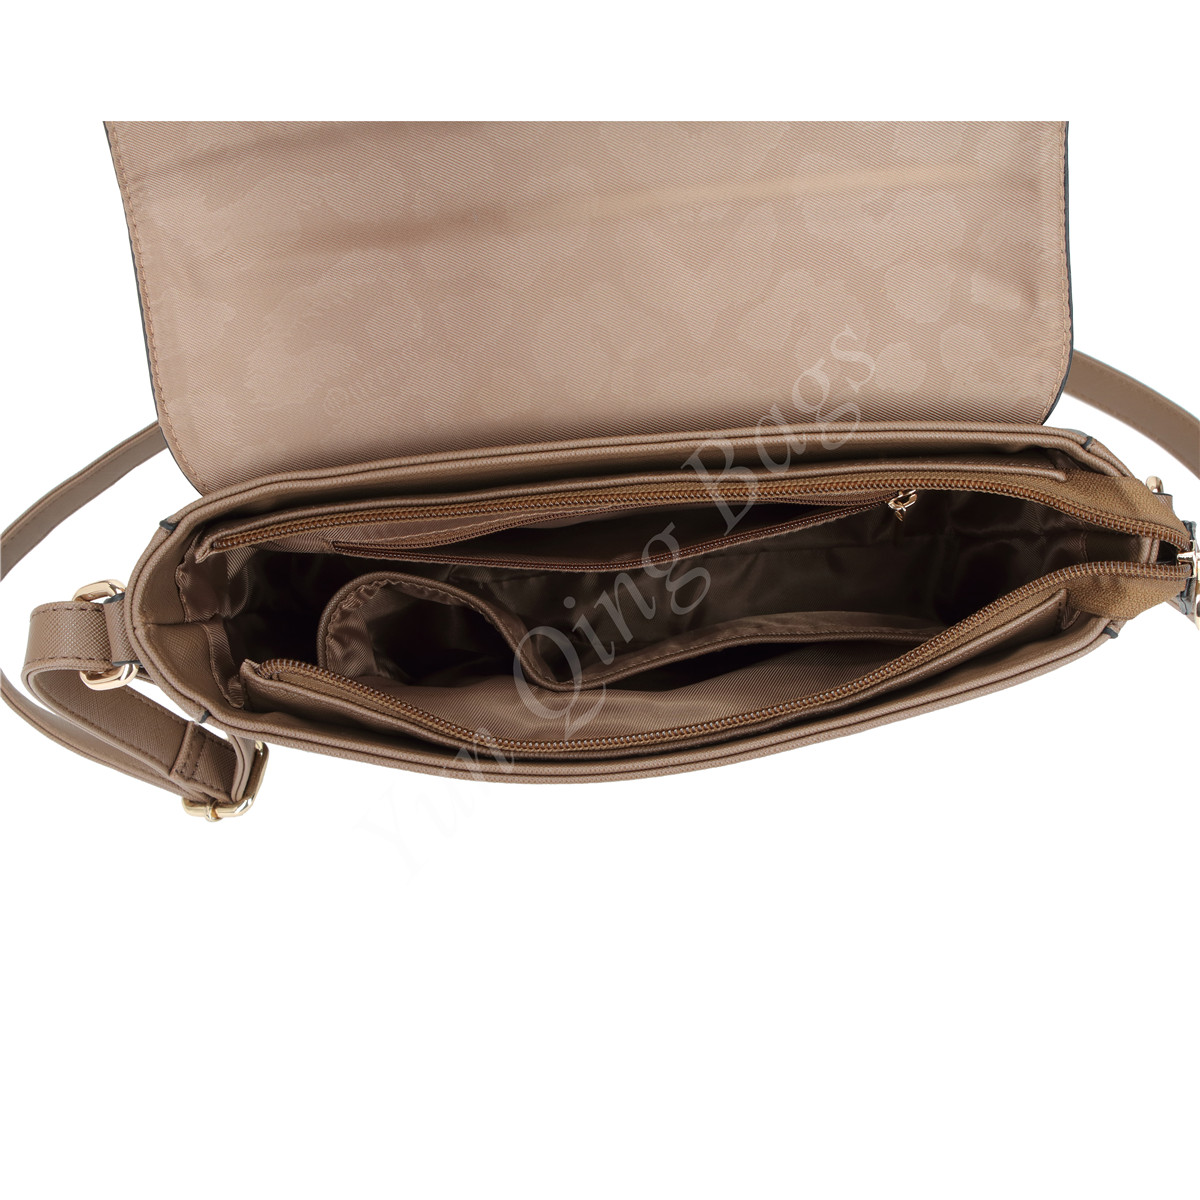 Fashion Crossbody Messenger Bag With Front Laser Hole